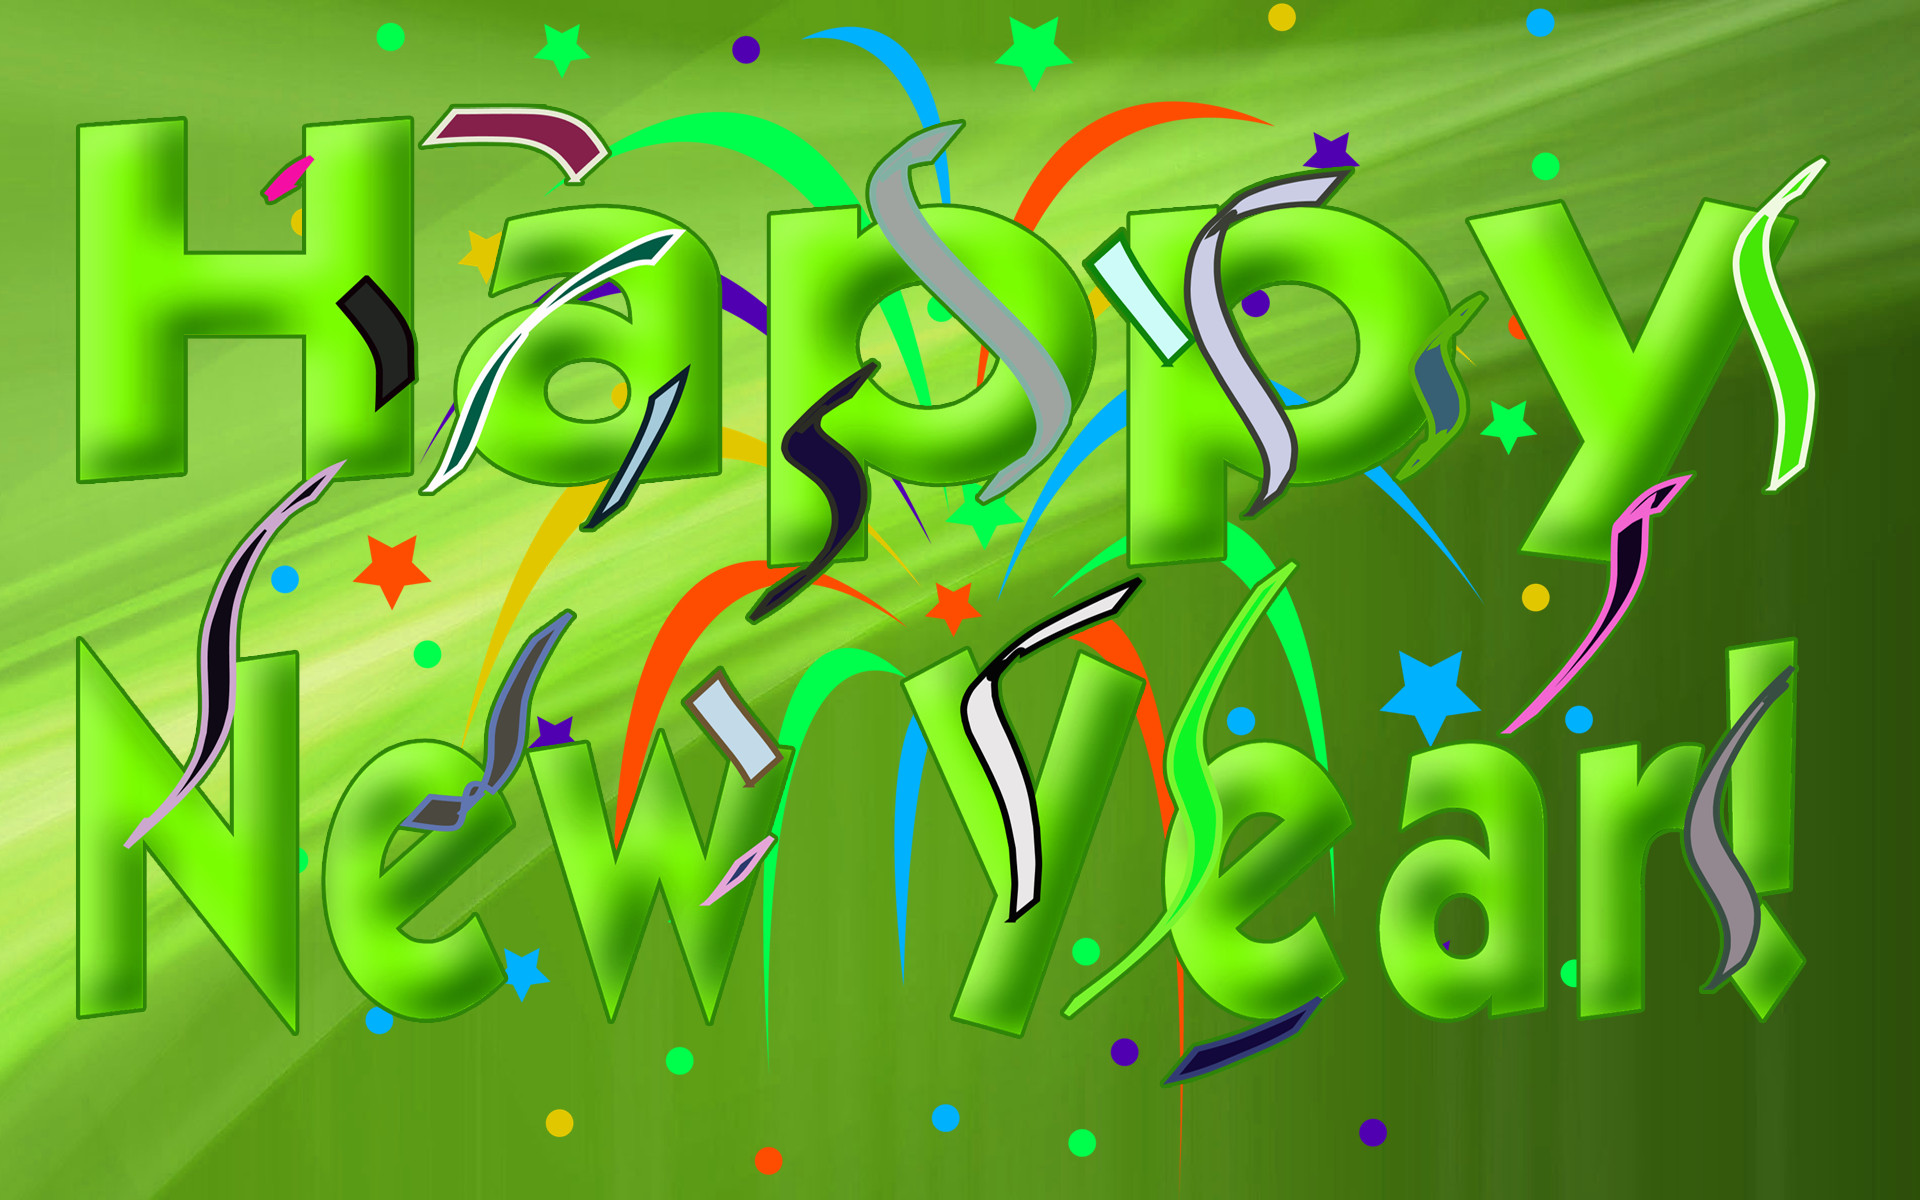 Explore Happy New Year Pictures and more!